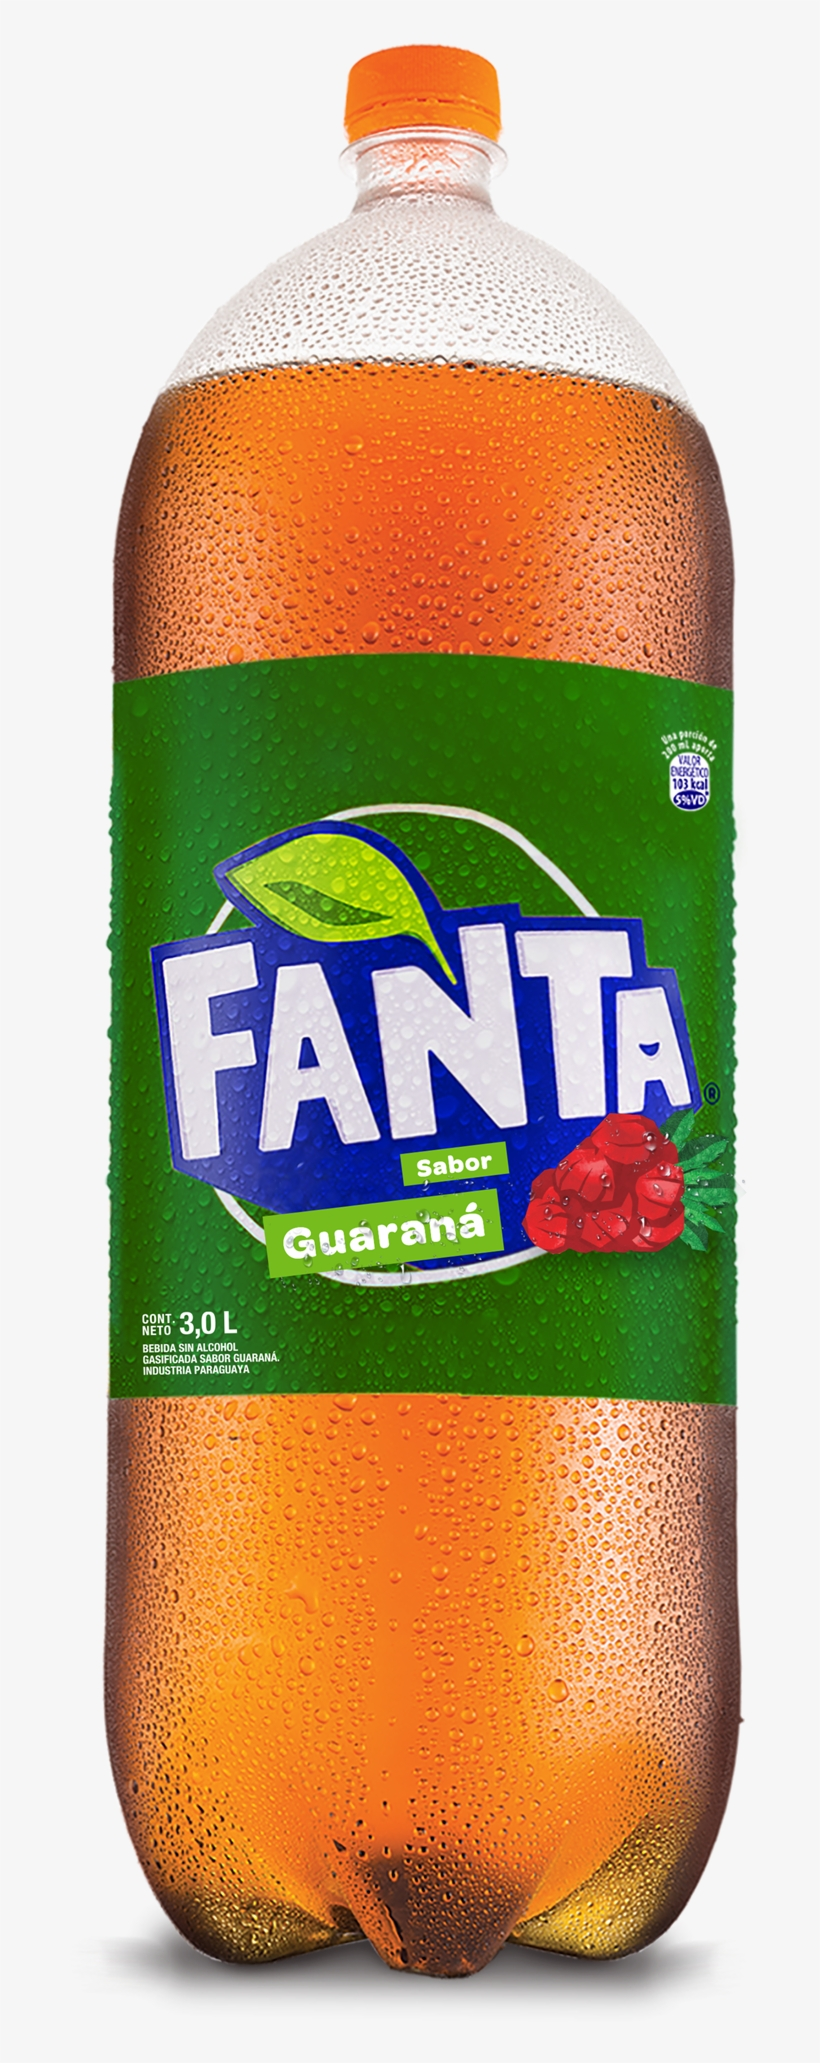 Gaseosa Guarana Logo - Fanta Guarana 3 Litros, transparent png #4253136